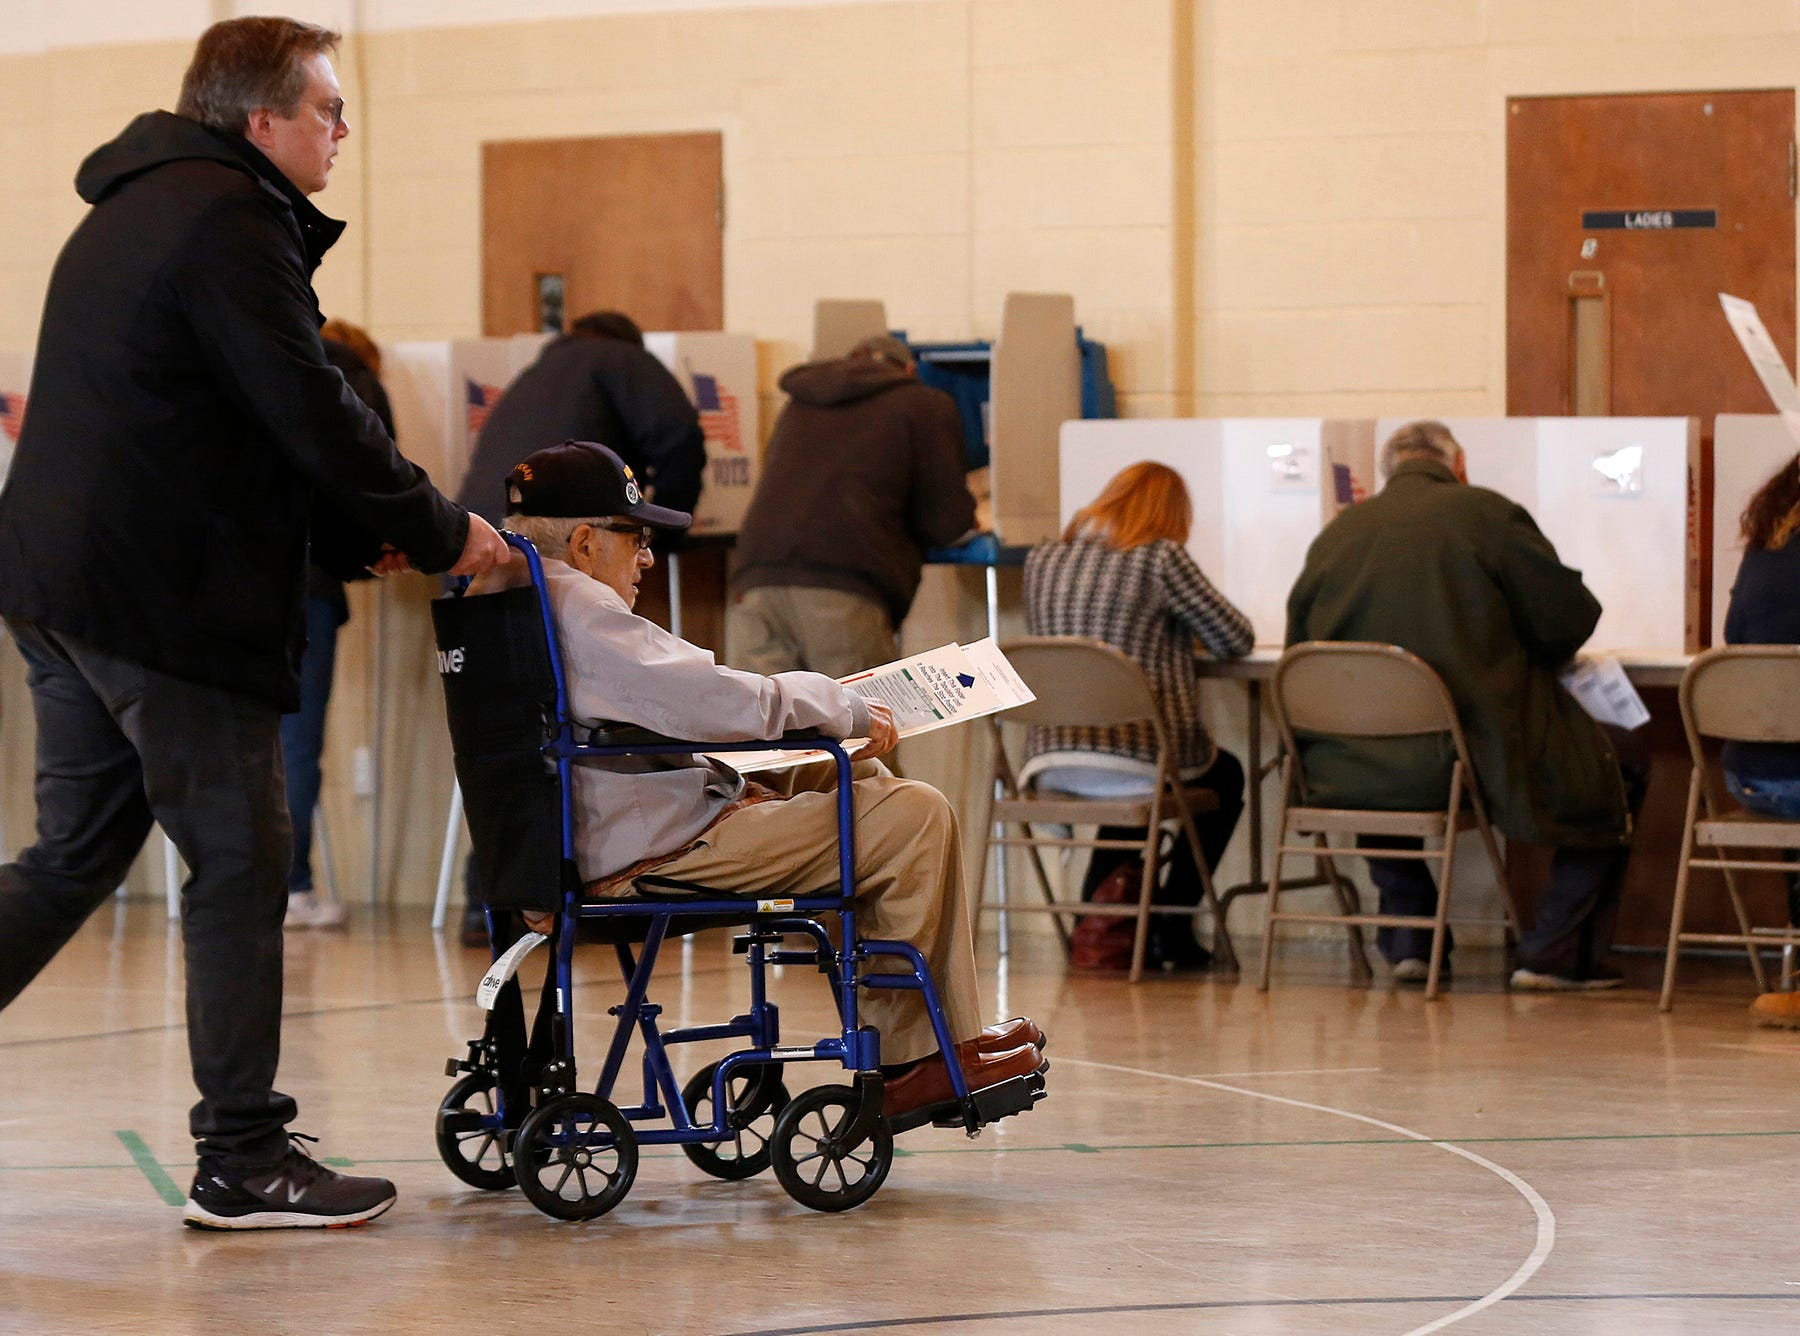 Joe Giacalone, of Commerce Township, helps his father and Army veteran Ignatius Giacalone, 97, also of Commerce Township, to vote at Union Lake Baptist in Commerce Township on November 6, 2018. Giacalone fought in World War II serving two tours in Europe and said he felt proud to be able to vote again.